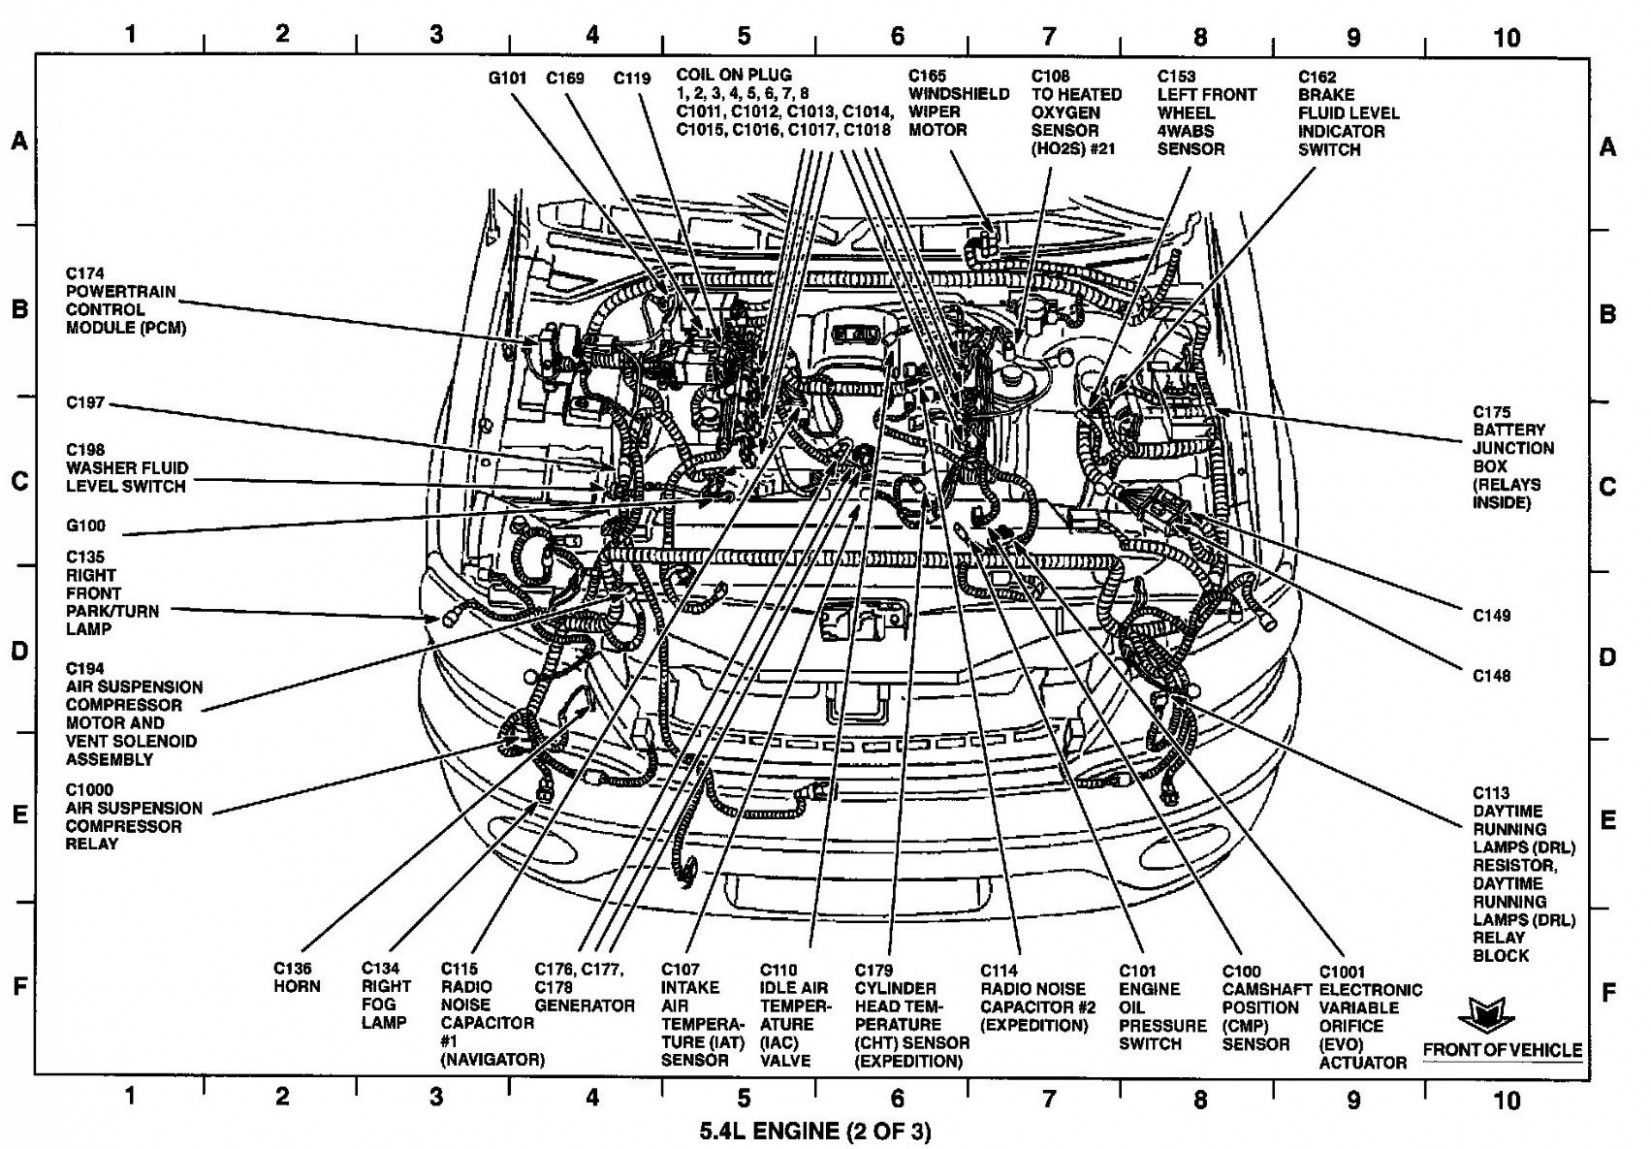 Bmw Engine Bay Diagram - simple guide about wiring diagram bmw e46 318i  engine wiring diagram in 2020 | Ford focus engine, Ford focus, Ford focus stPinterest